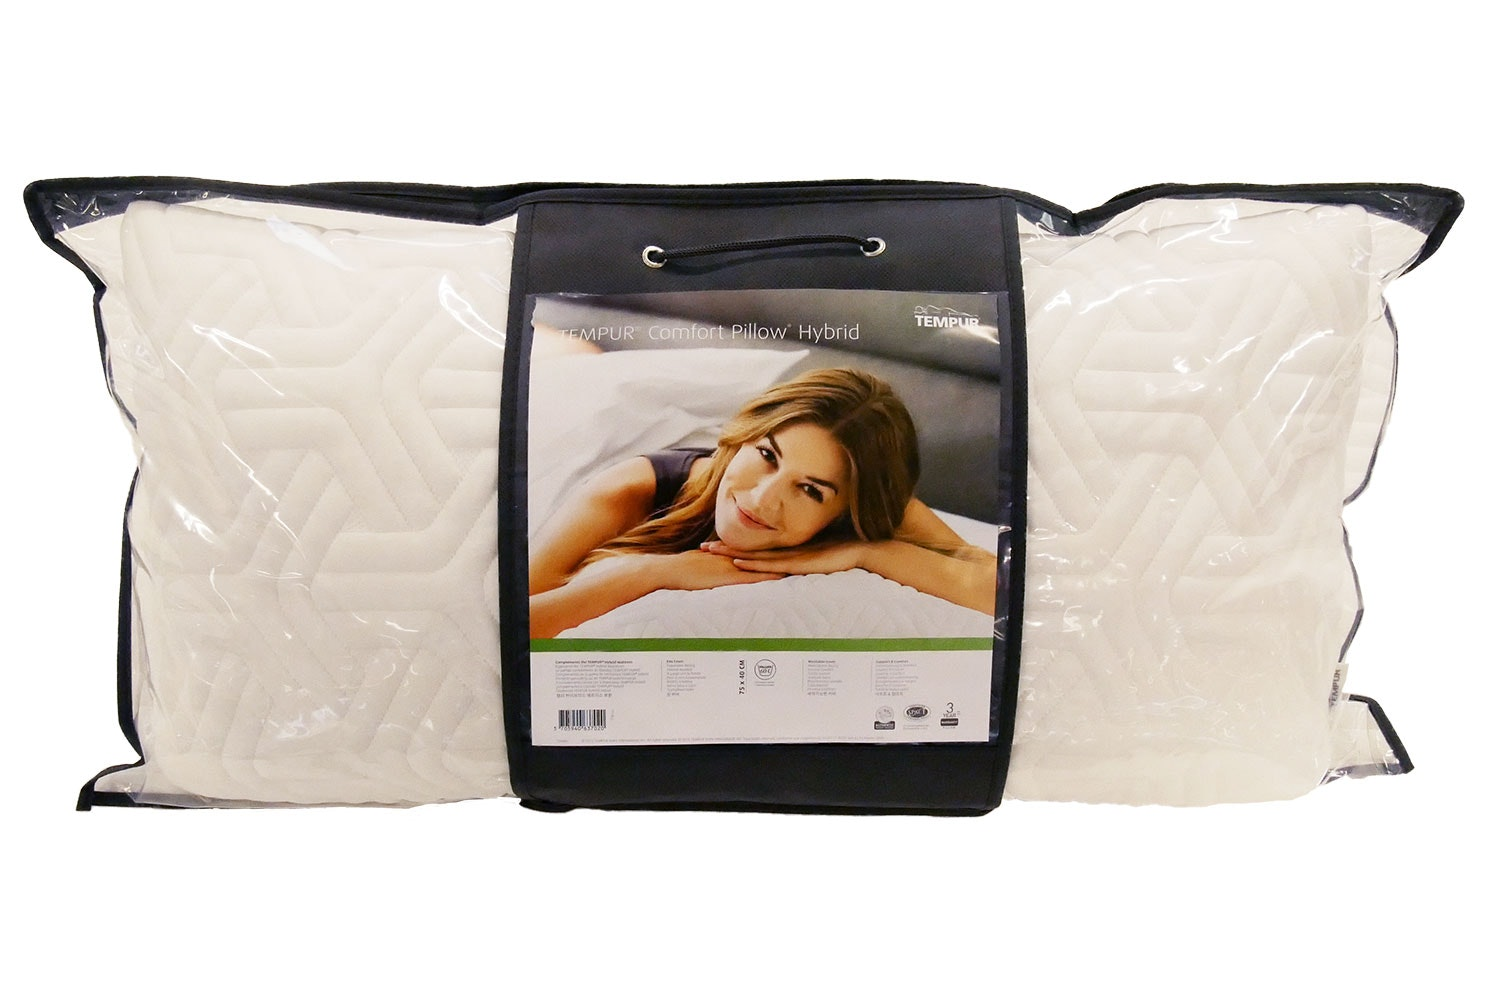 Comfort Hybrid Pillow by Tempur